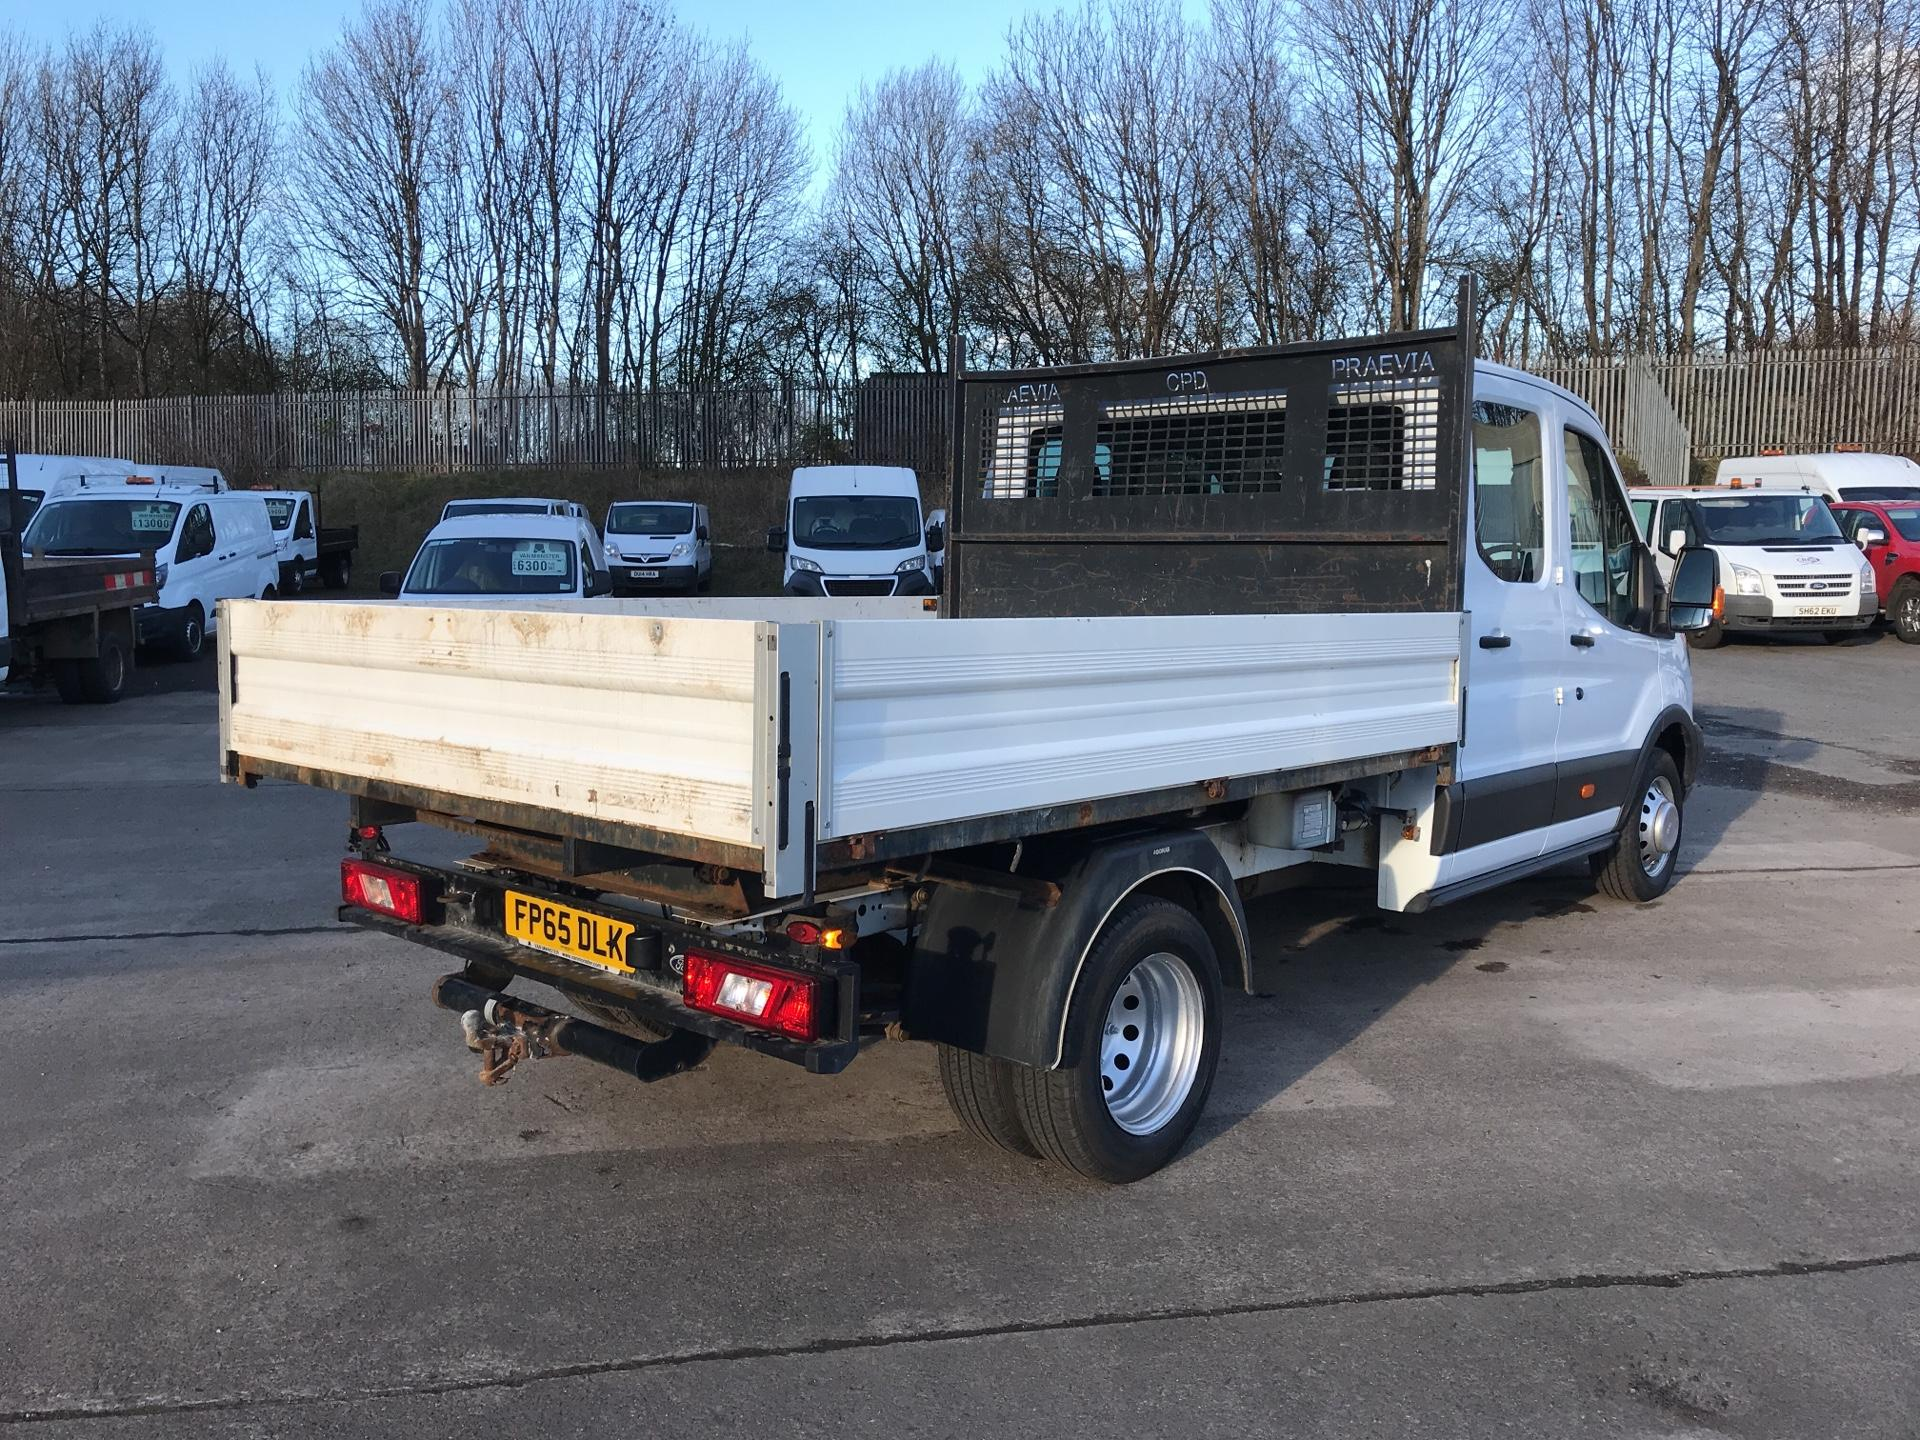 2016 Ford Transit 350 L3 DOUBLE CAB TIPPER 125PS EURO 5 (FP65DLK) Image 3